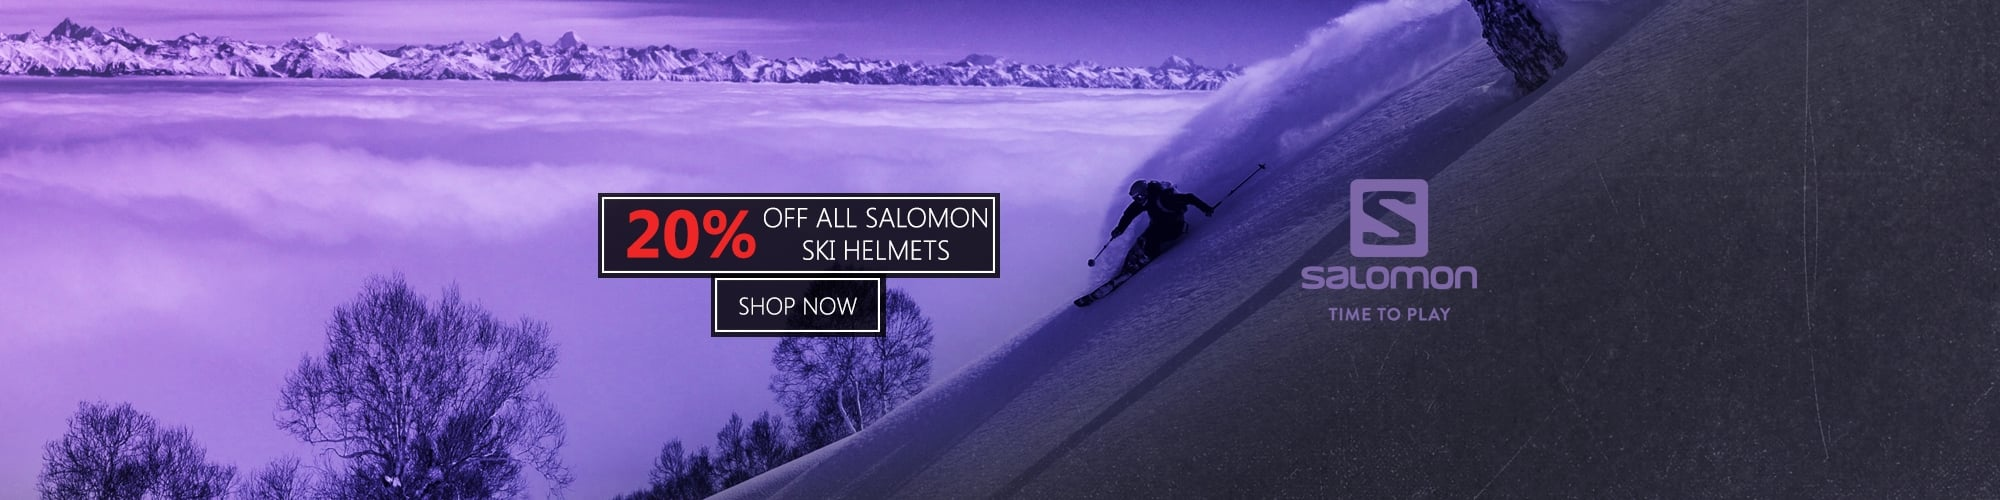 20% Off Salomon Ski Helmets